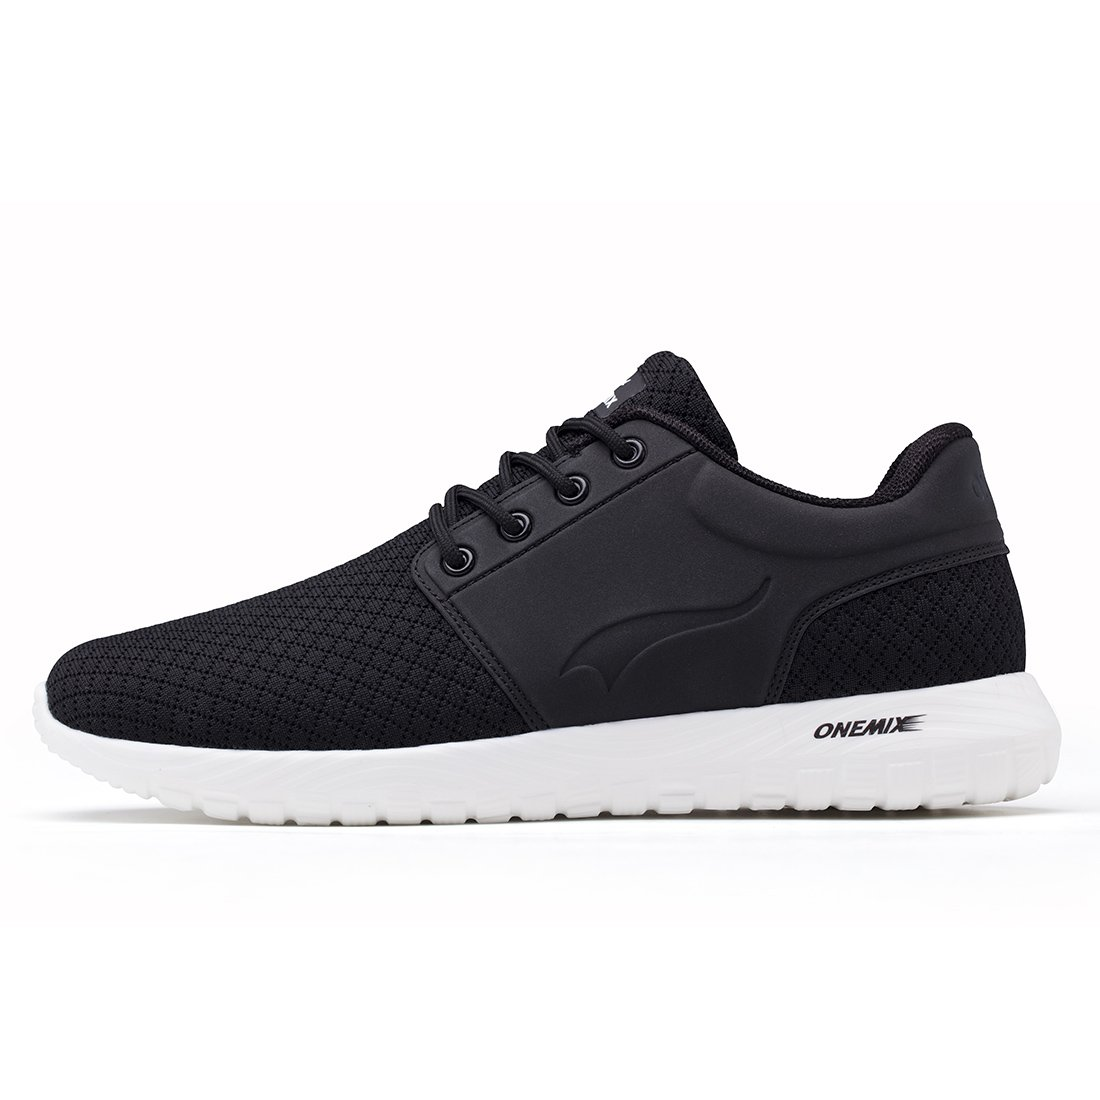 ONEMIX Lightweight Running Shoes - Men's Breathable Casual Sports Sneakers Mesh Soft Sole Casual Athletic Shoes 1265-Black45